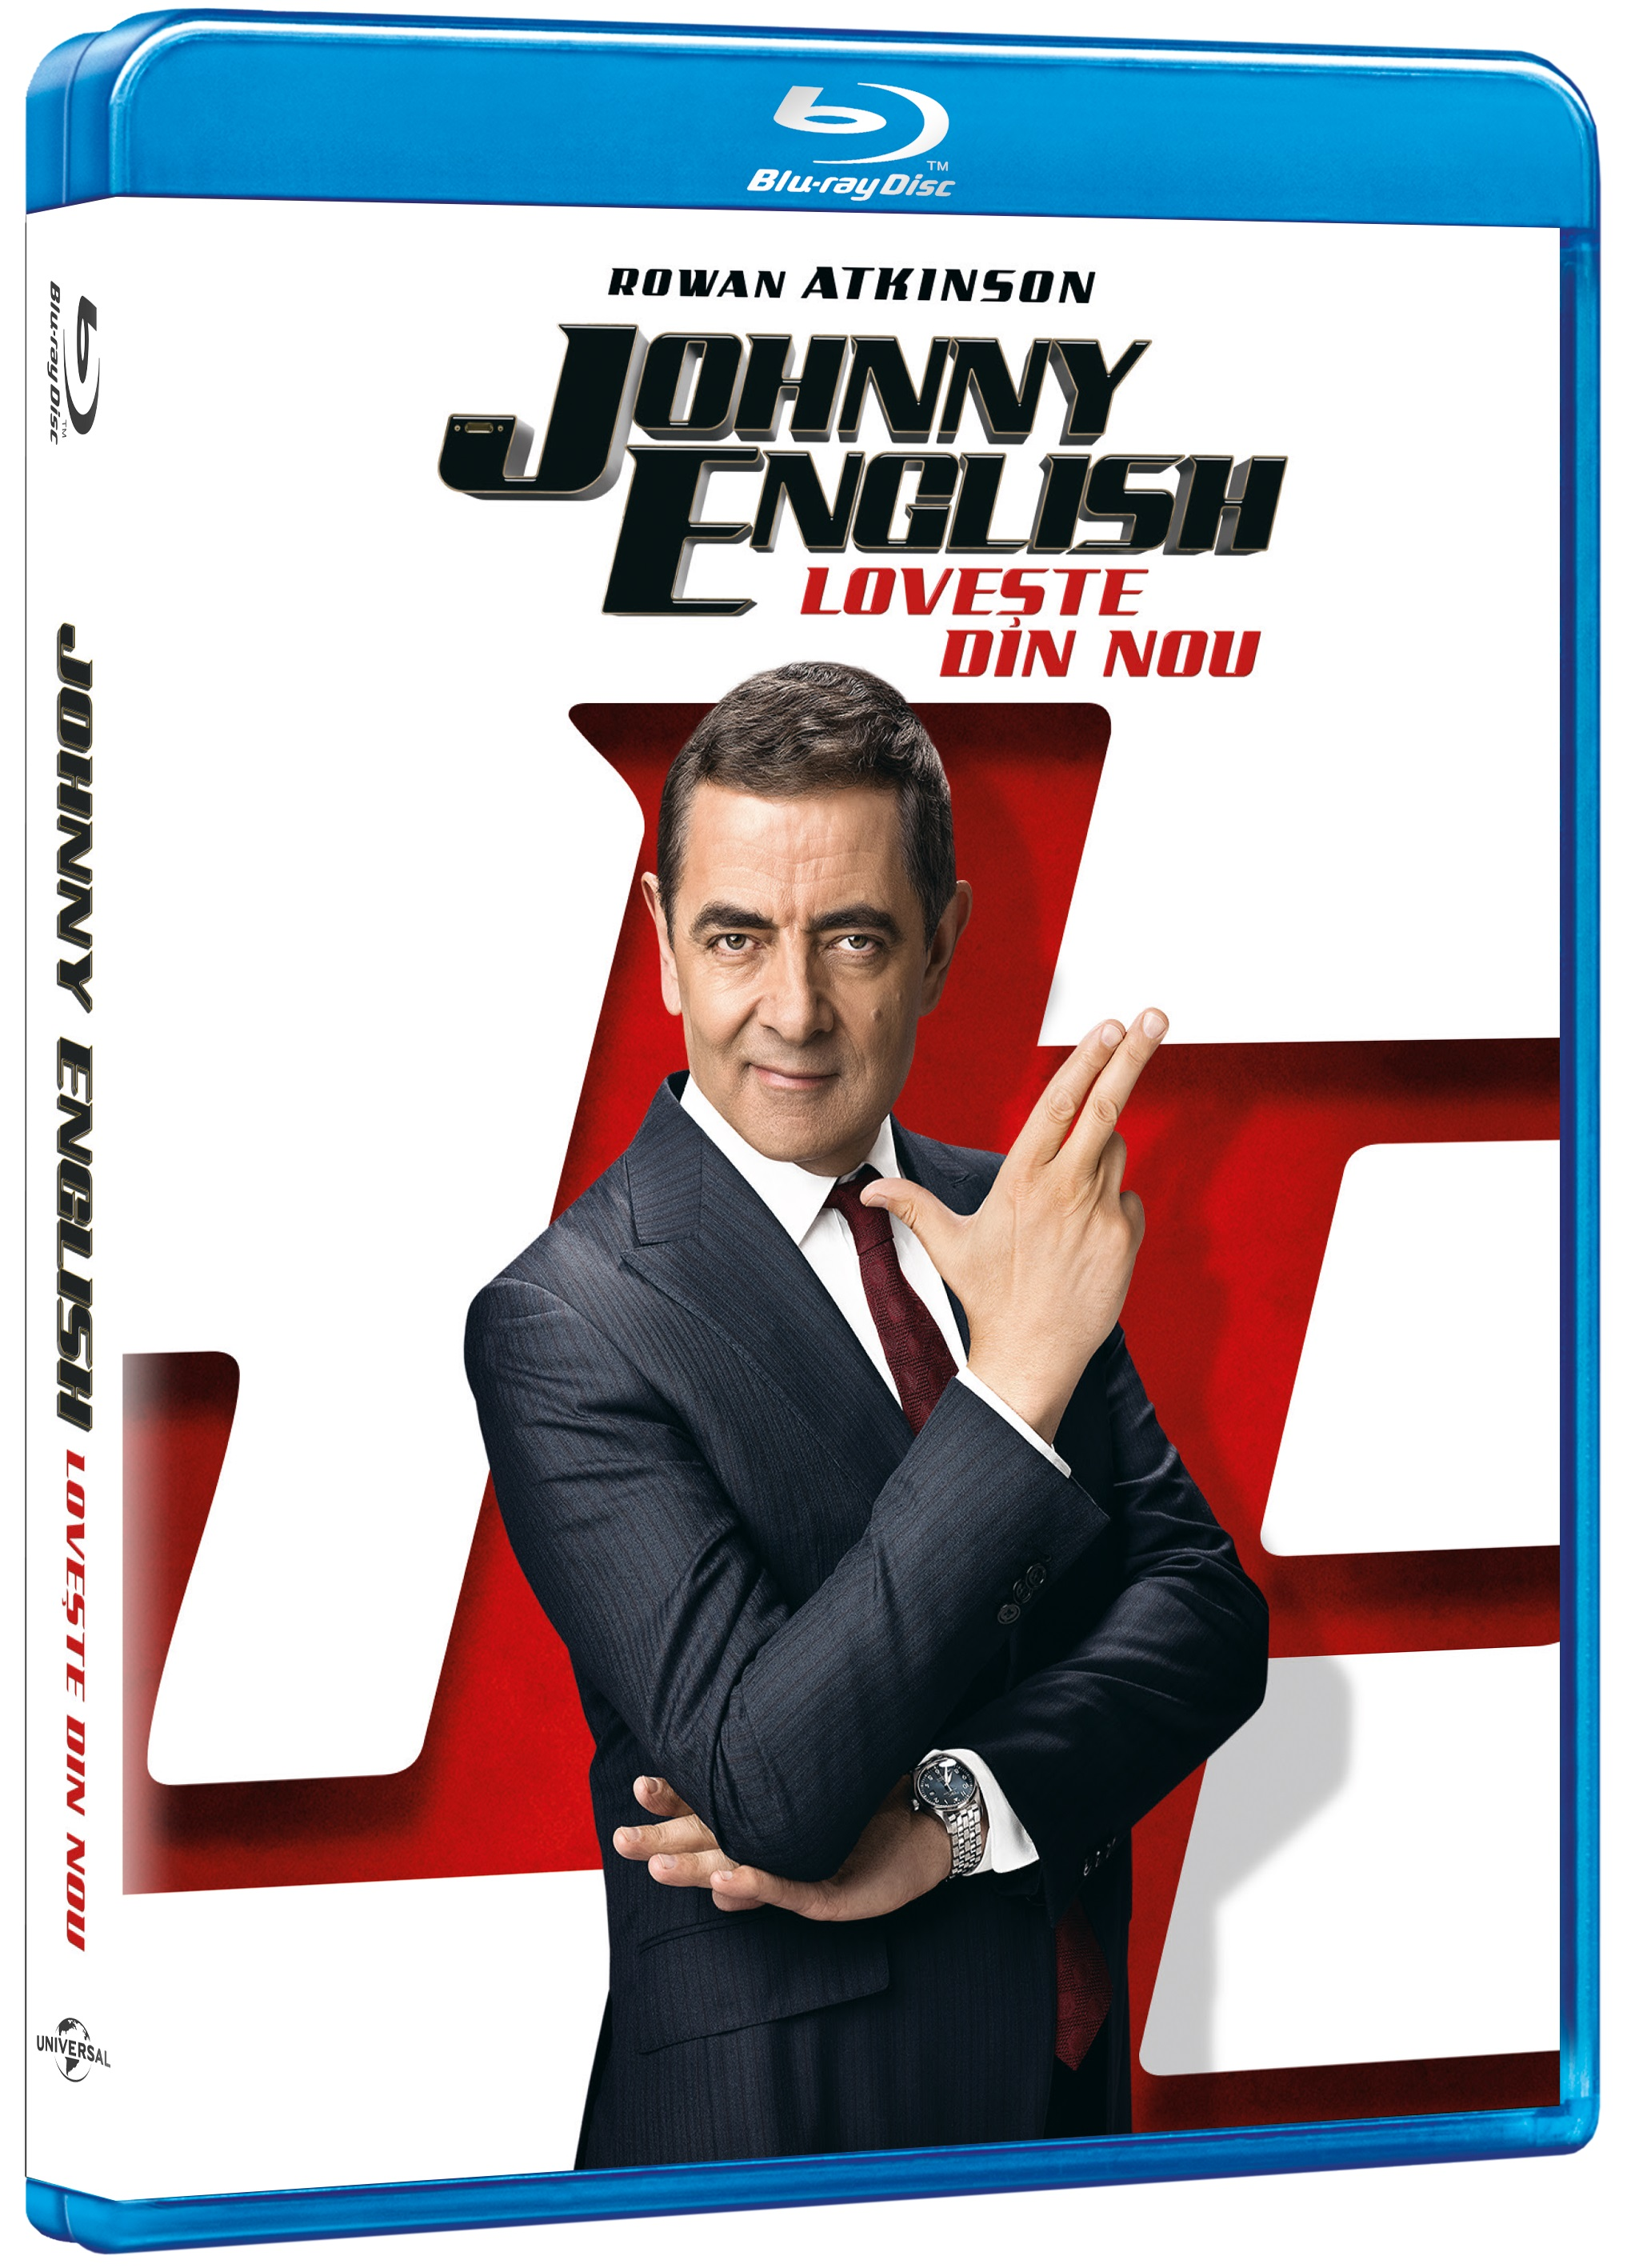 Johnny English loveste din nou / Johnny English Strikes Again (Blu-Ray Disc) thumbnail